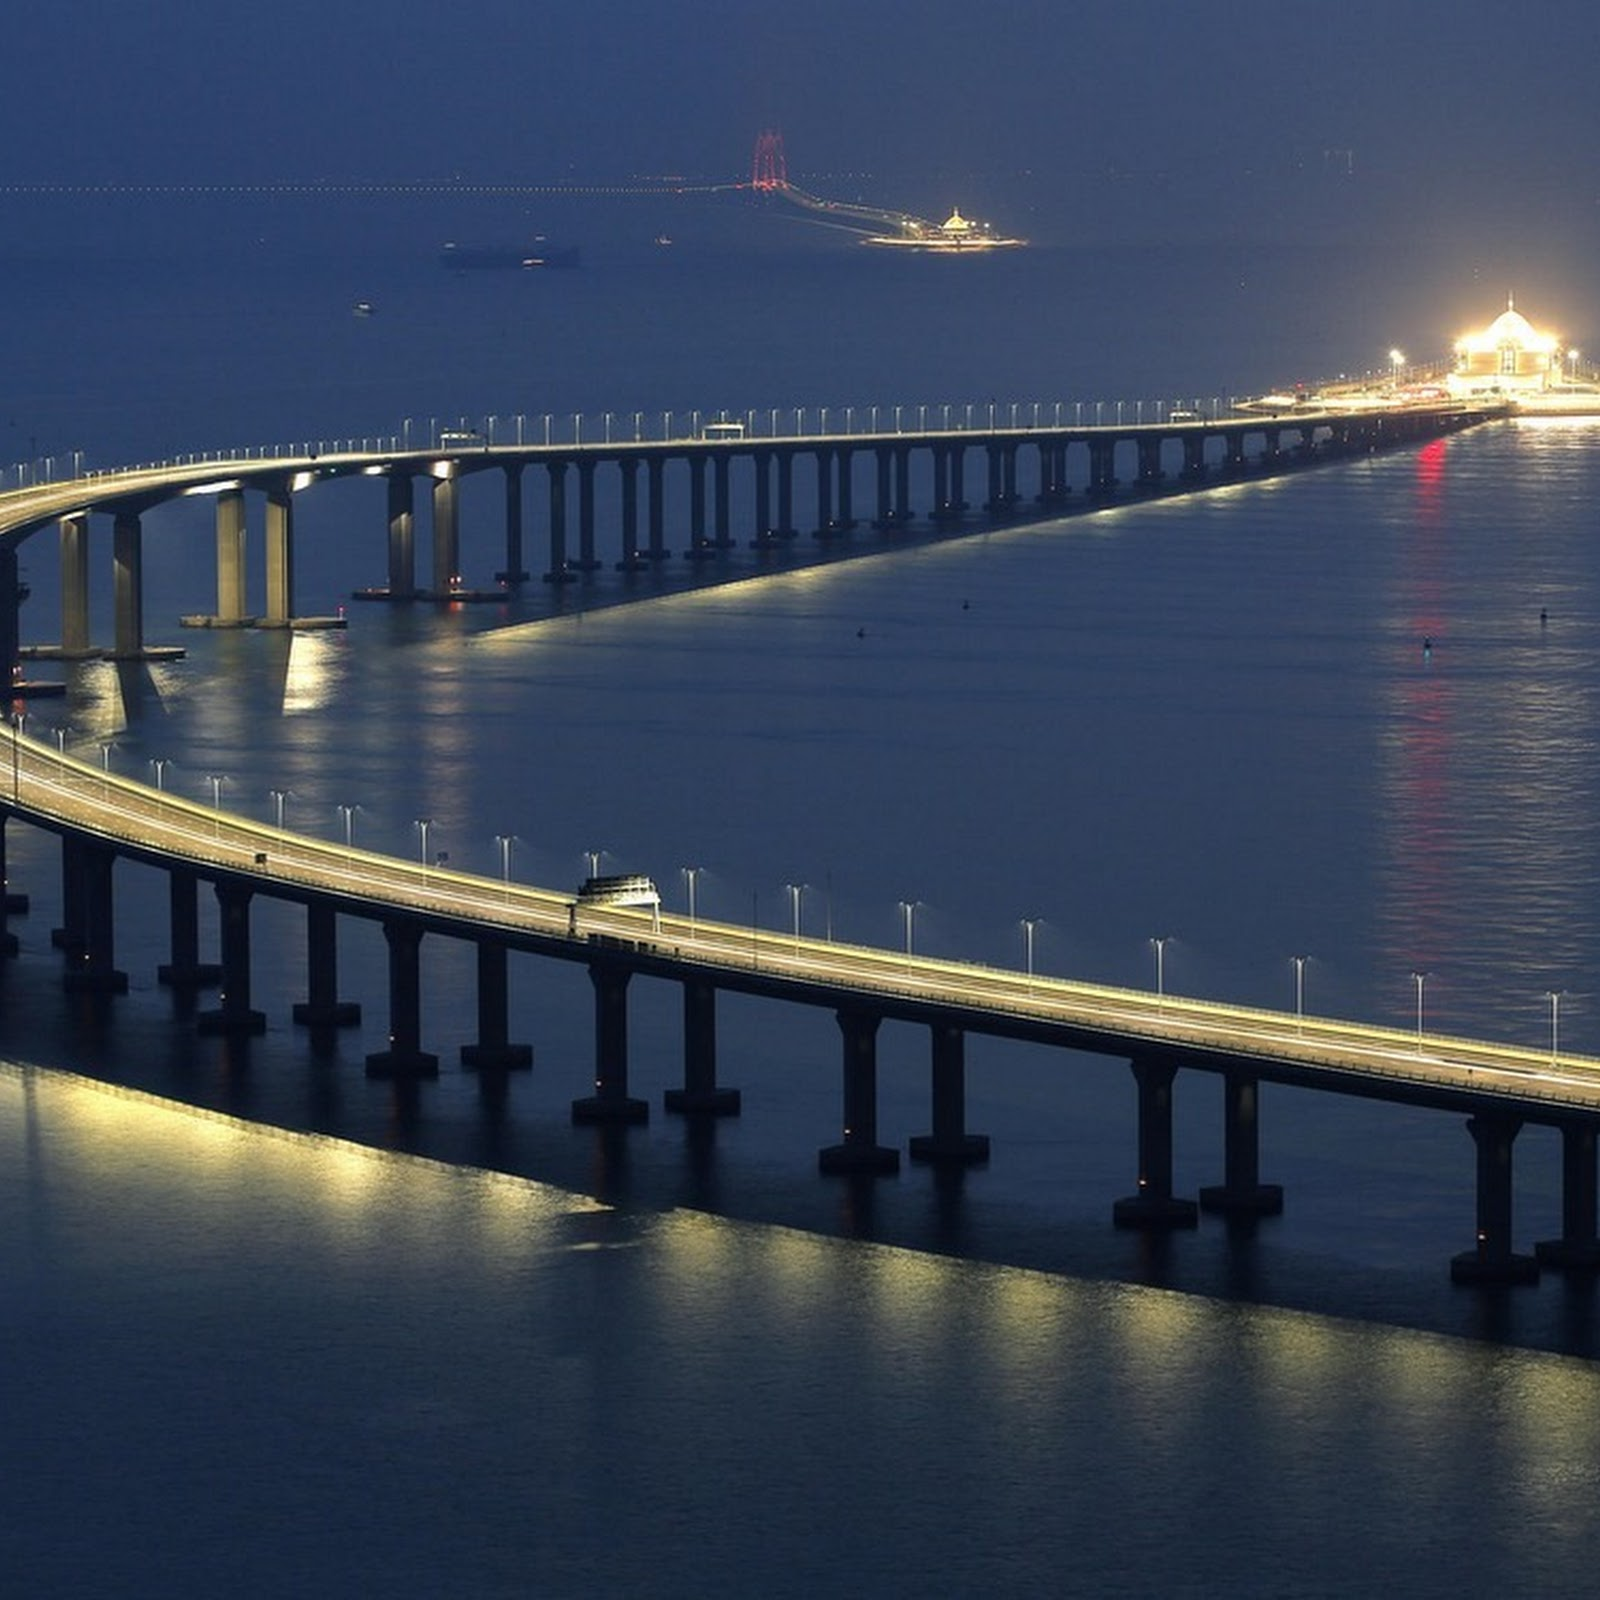 Hong Kong-Zhuhai-Macau Bridge: The World's Longest Sea Crossing